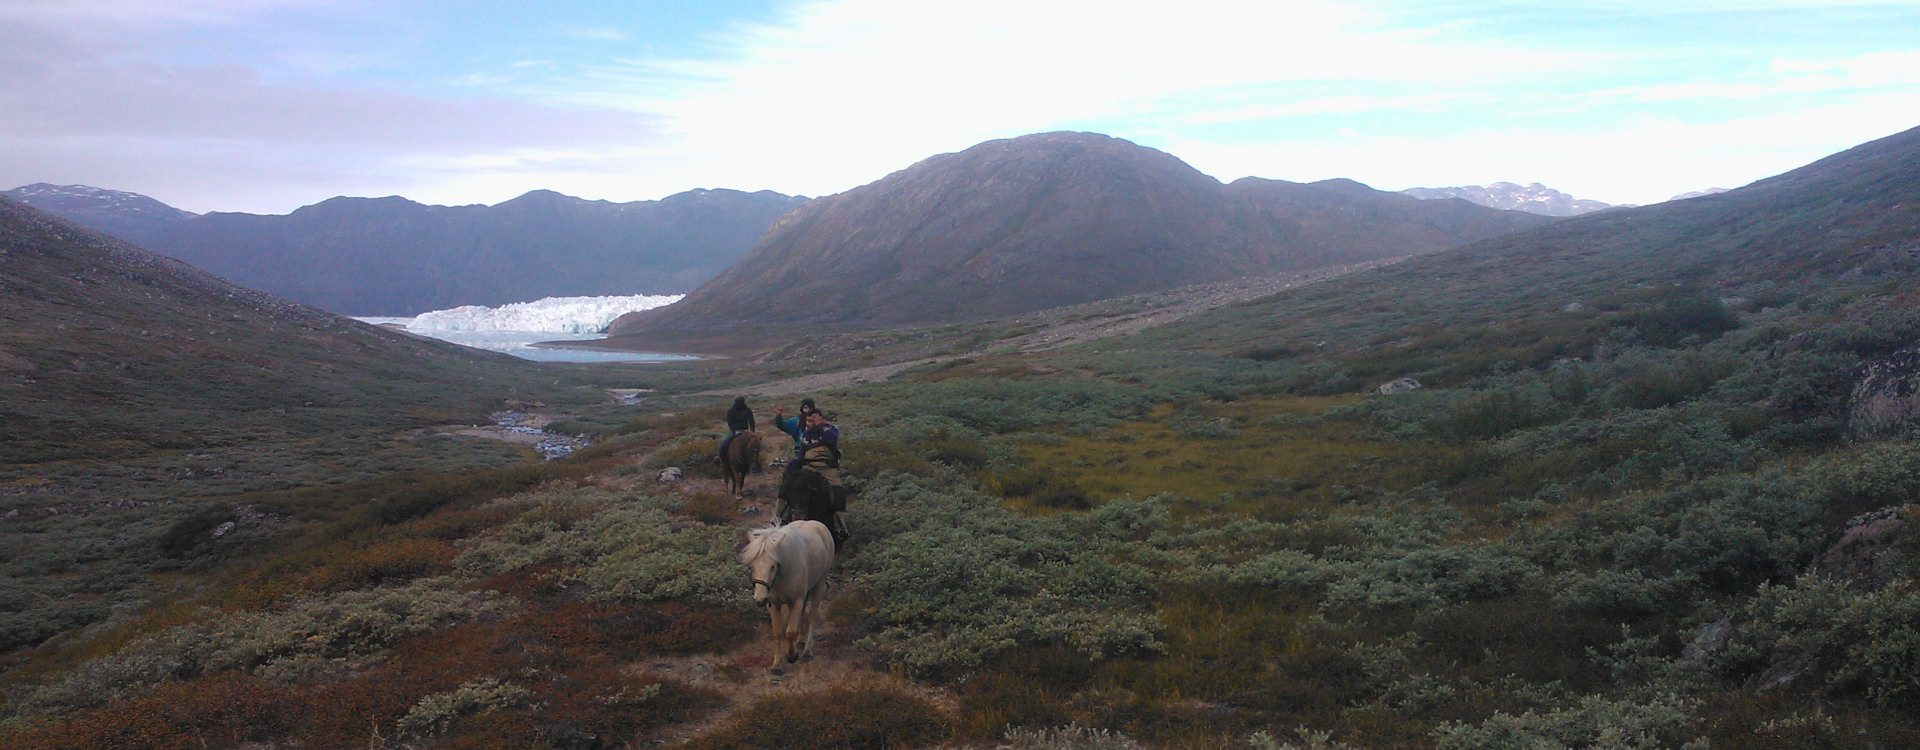 Riding in Greenland